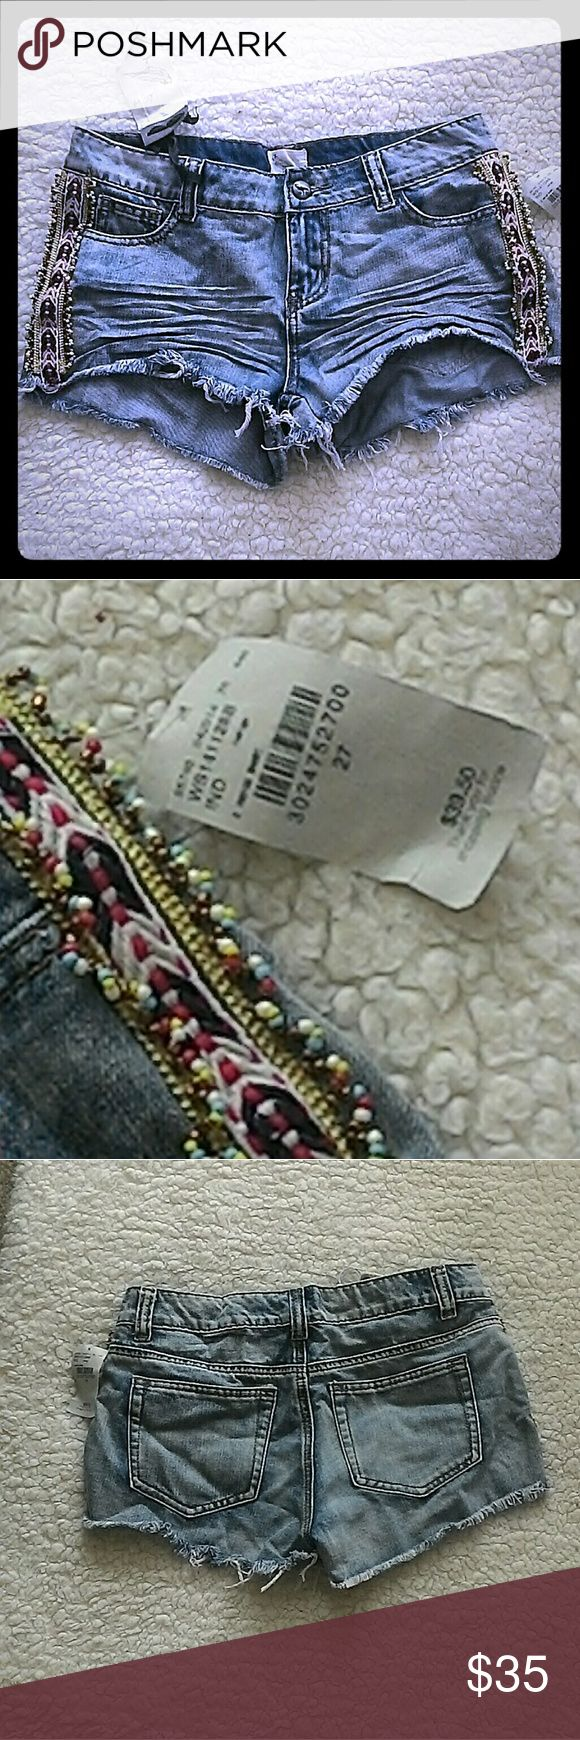 """NWT White Crow Shorts Cutest shorts on the planet! I bought them too big for me. Perfect for festivals with some cowboy boots.  The have beading and embroidered ribbon on the side of each leg. They have cute whiskers in the front.  85% cotton and 15% polyester. Not stretchy.  I'd say they're true to size. Waist measures 28"""" laid flat, from the back. Rise is 8"""", and inseam is 1"""".  I bought these at the Buckle store at the Irvine Spectrum. Crazy cute shorts! Please...no lowball offers. White…"""